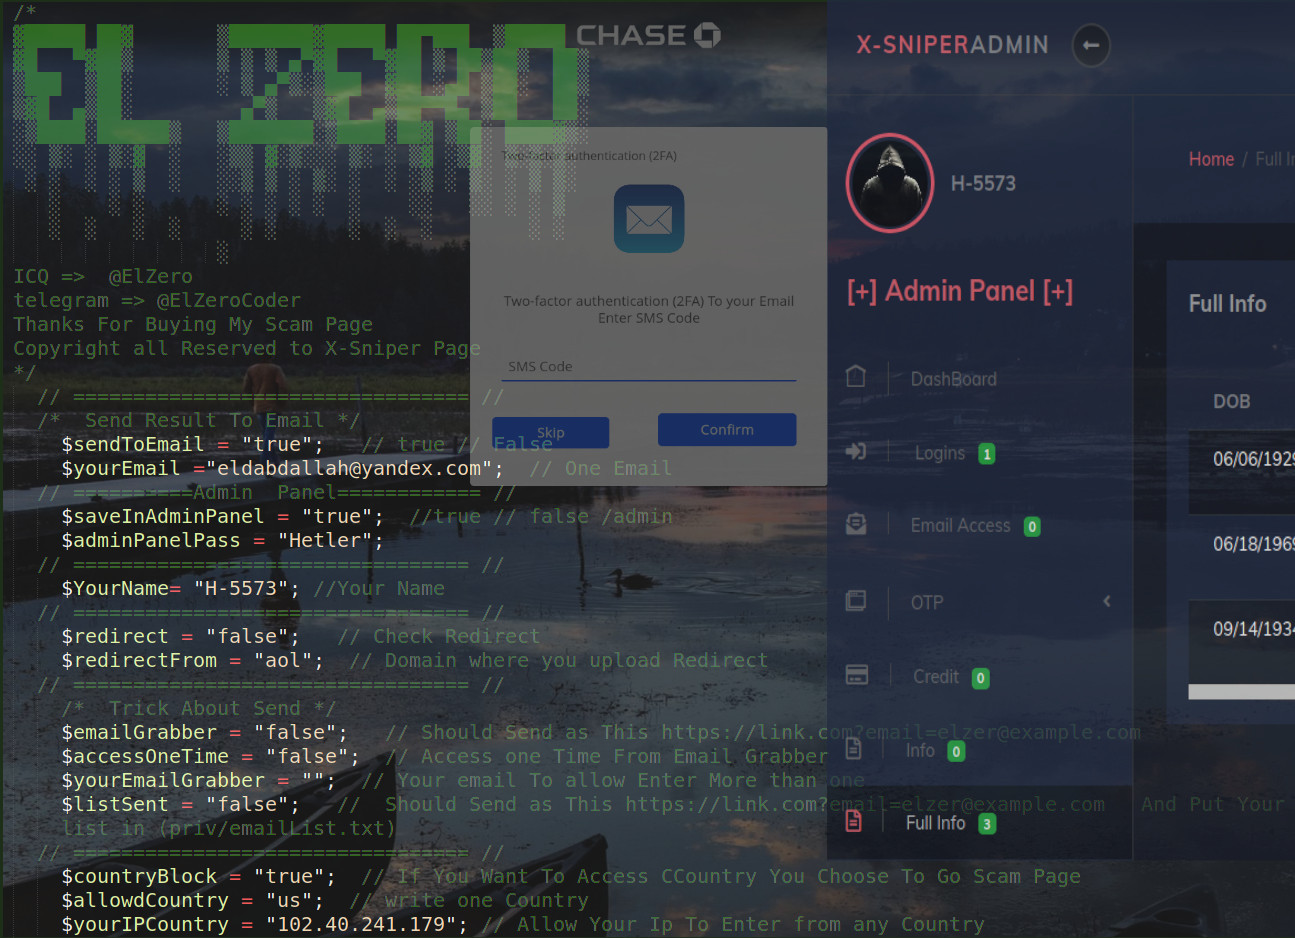 X-SniPer Chase Phishing Kit Targets Fullz for Account Takeover